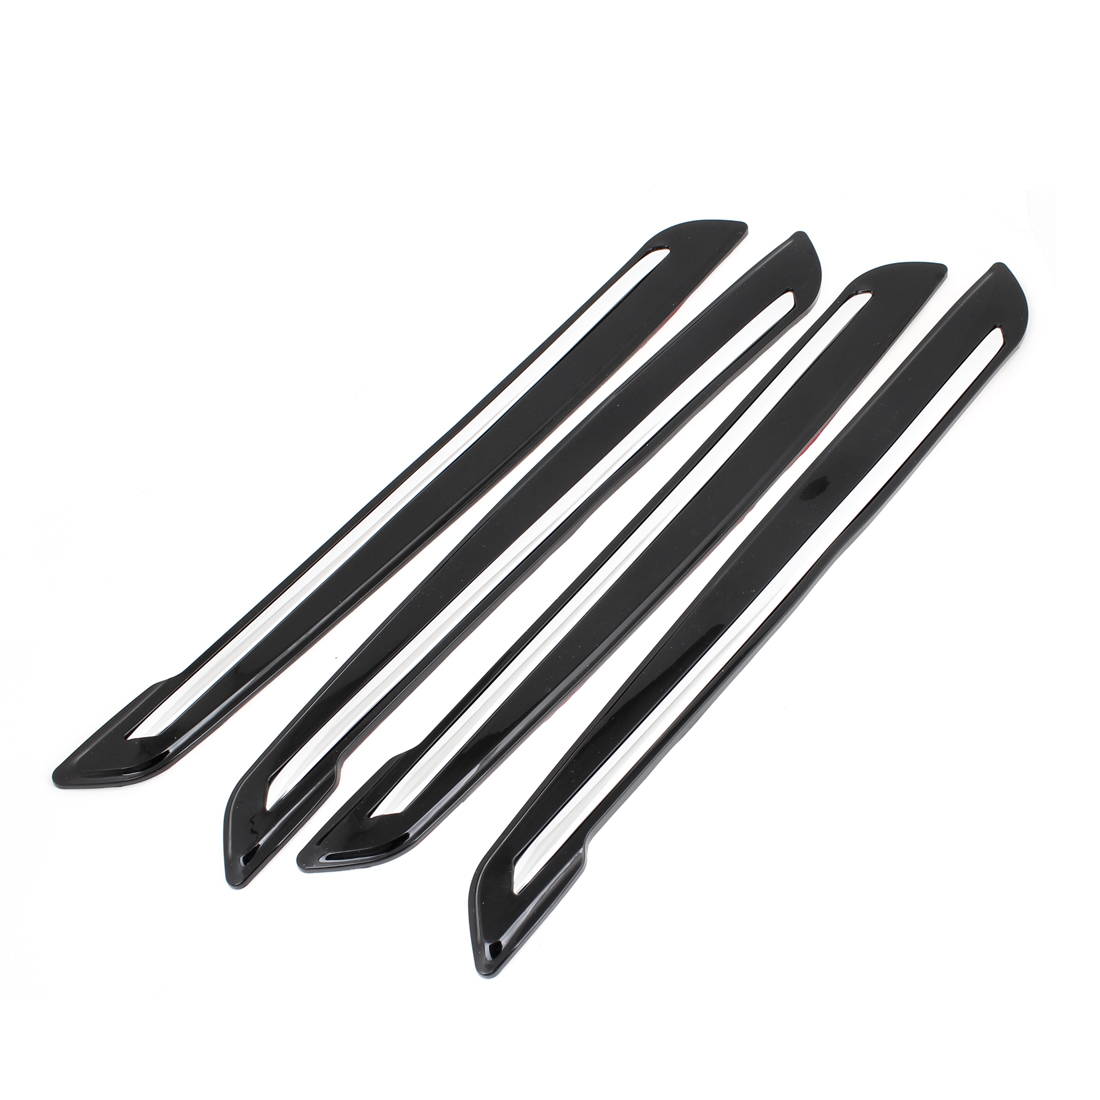 4 x Black Silver Tone Plastic Bumper Guard Protector Sticker for Car